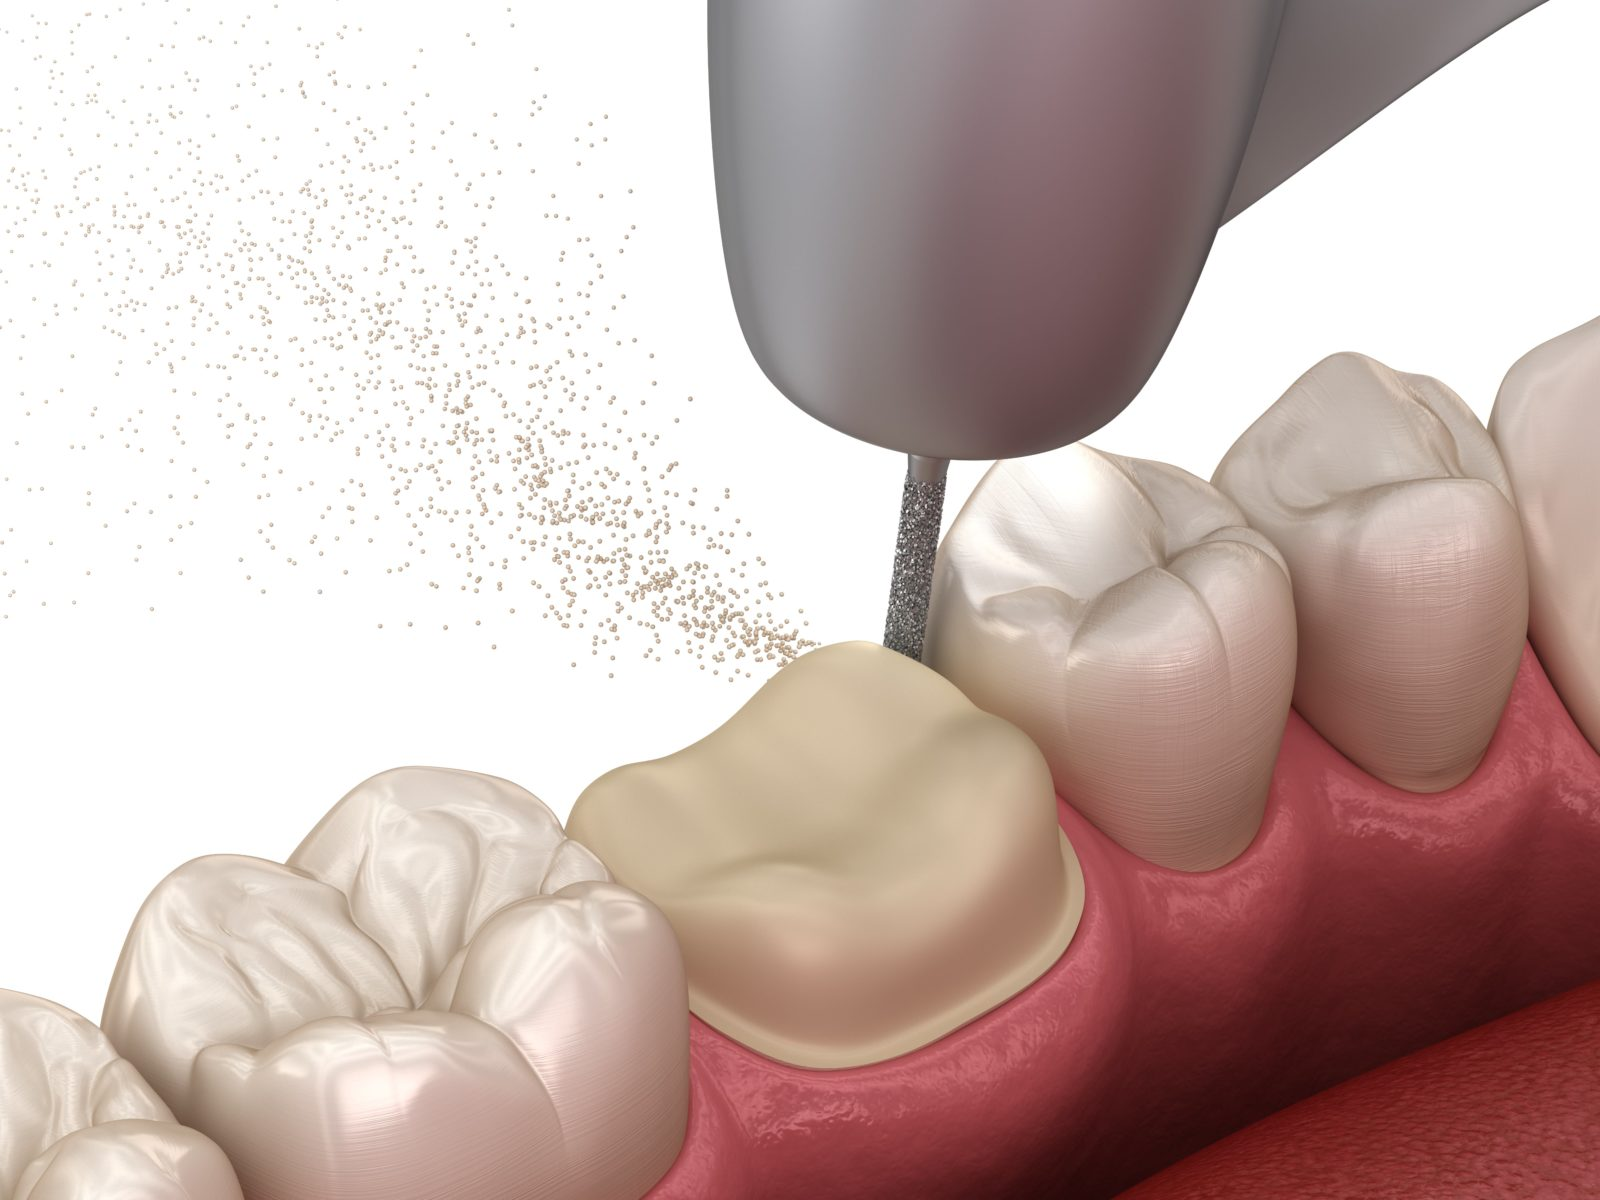 dental drill reducing a tooth in preparation for a dental crown